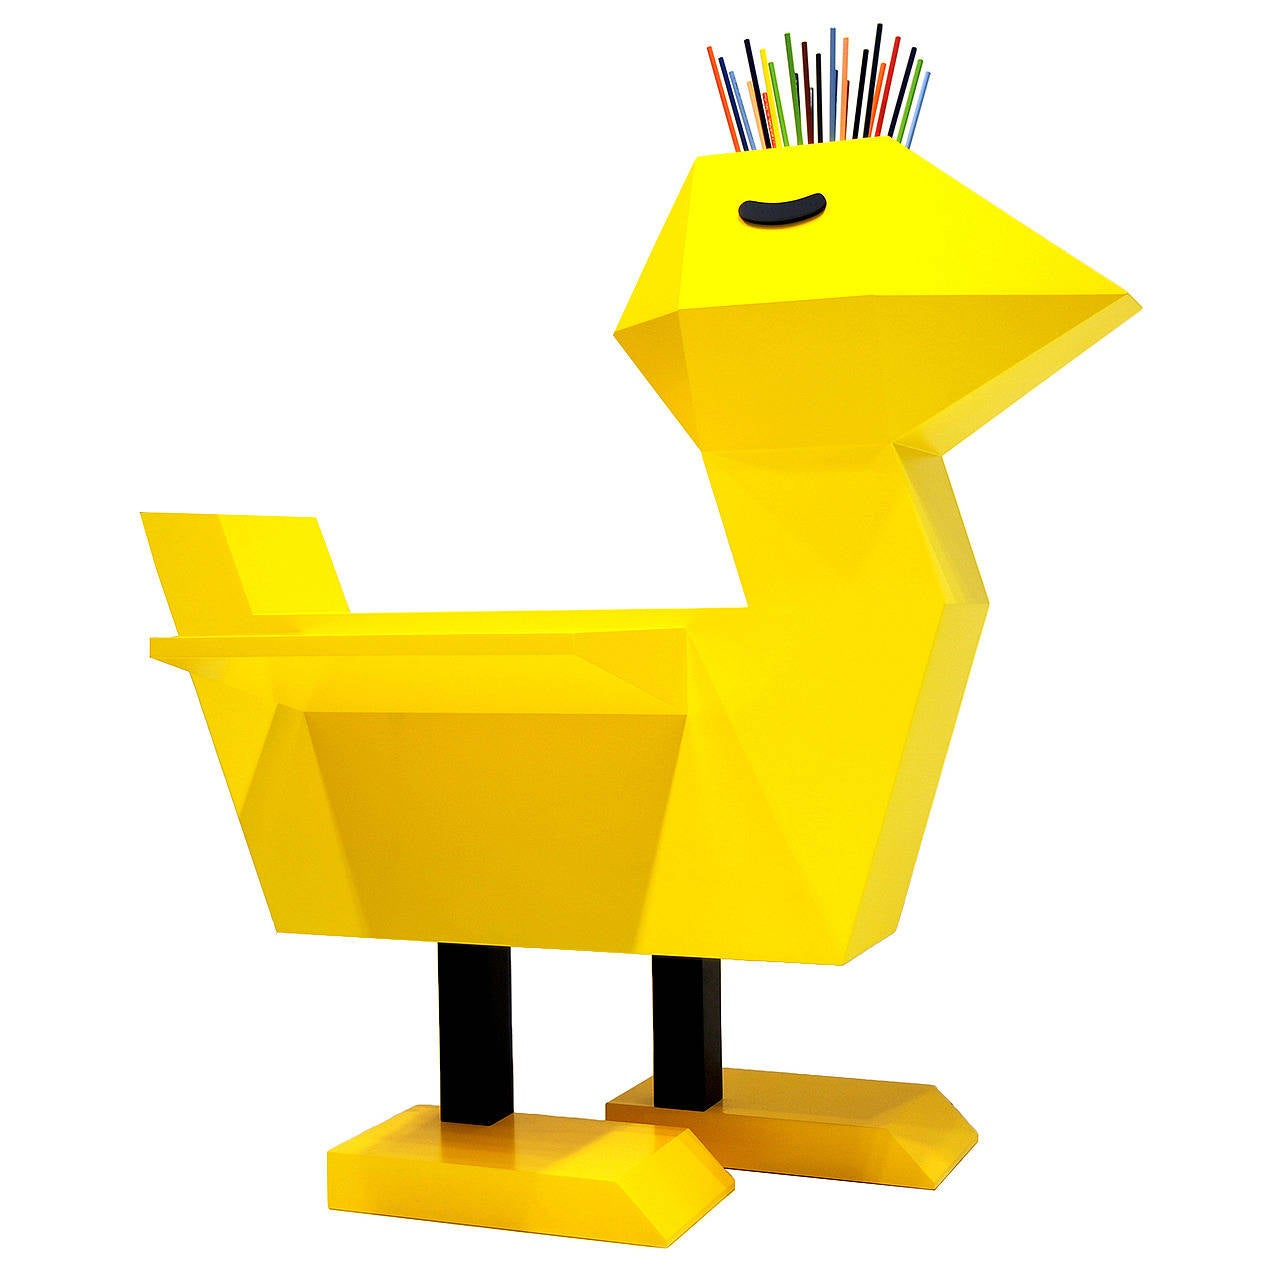 Limited Edition Yellow Double Wing Chicken Desk by Guillamit 1